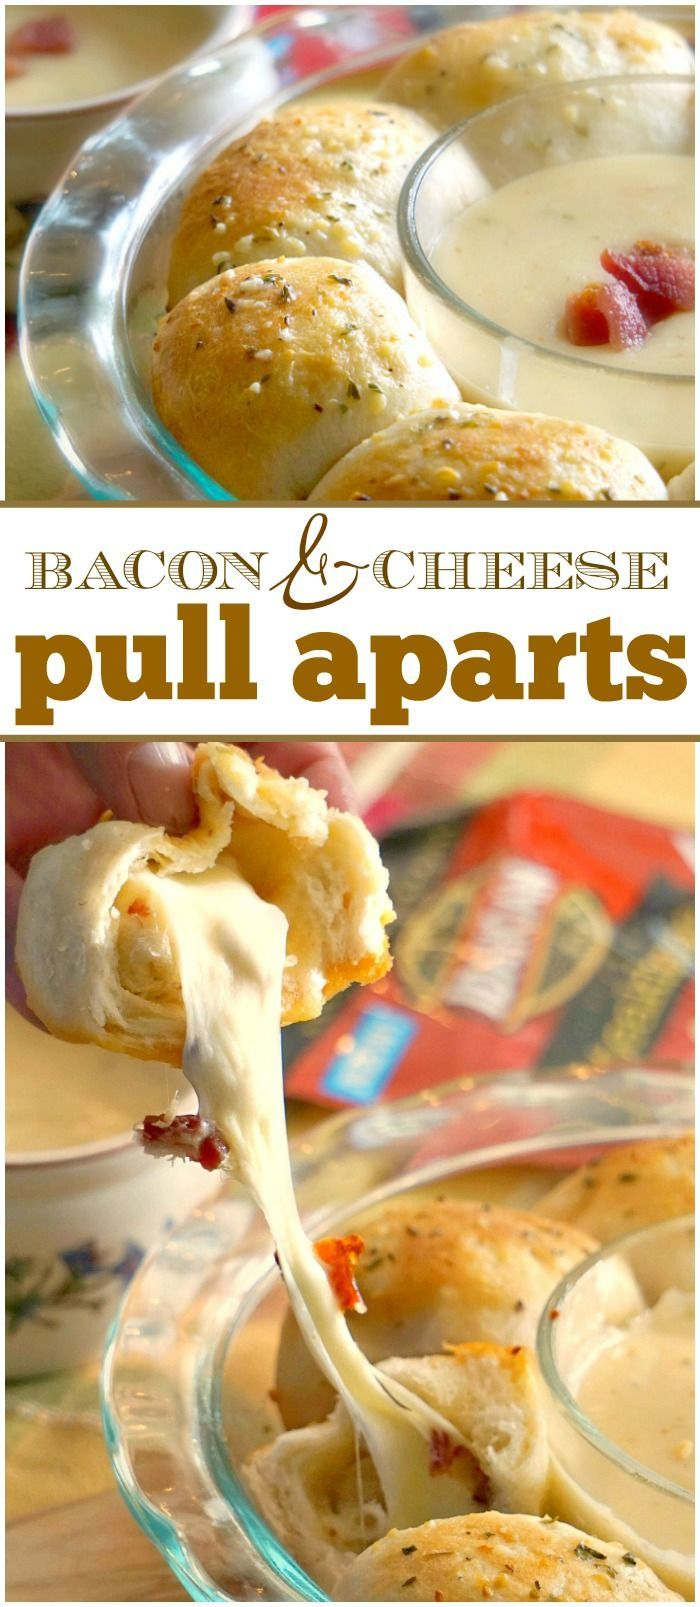 Bacon cheese pull aparts are a perfect side to any soup! Filled with ooey gooey cheese, garlic, and bacon they taste amazing! via @thetypicalmom